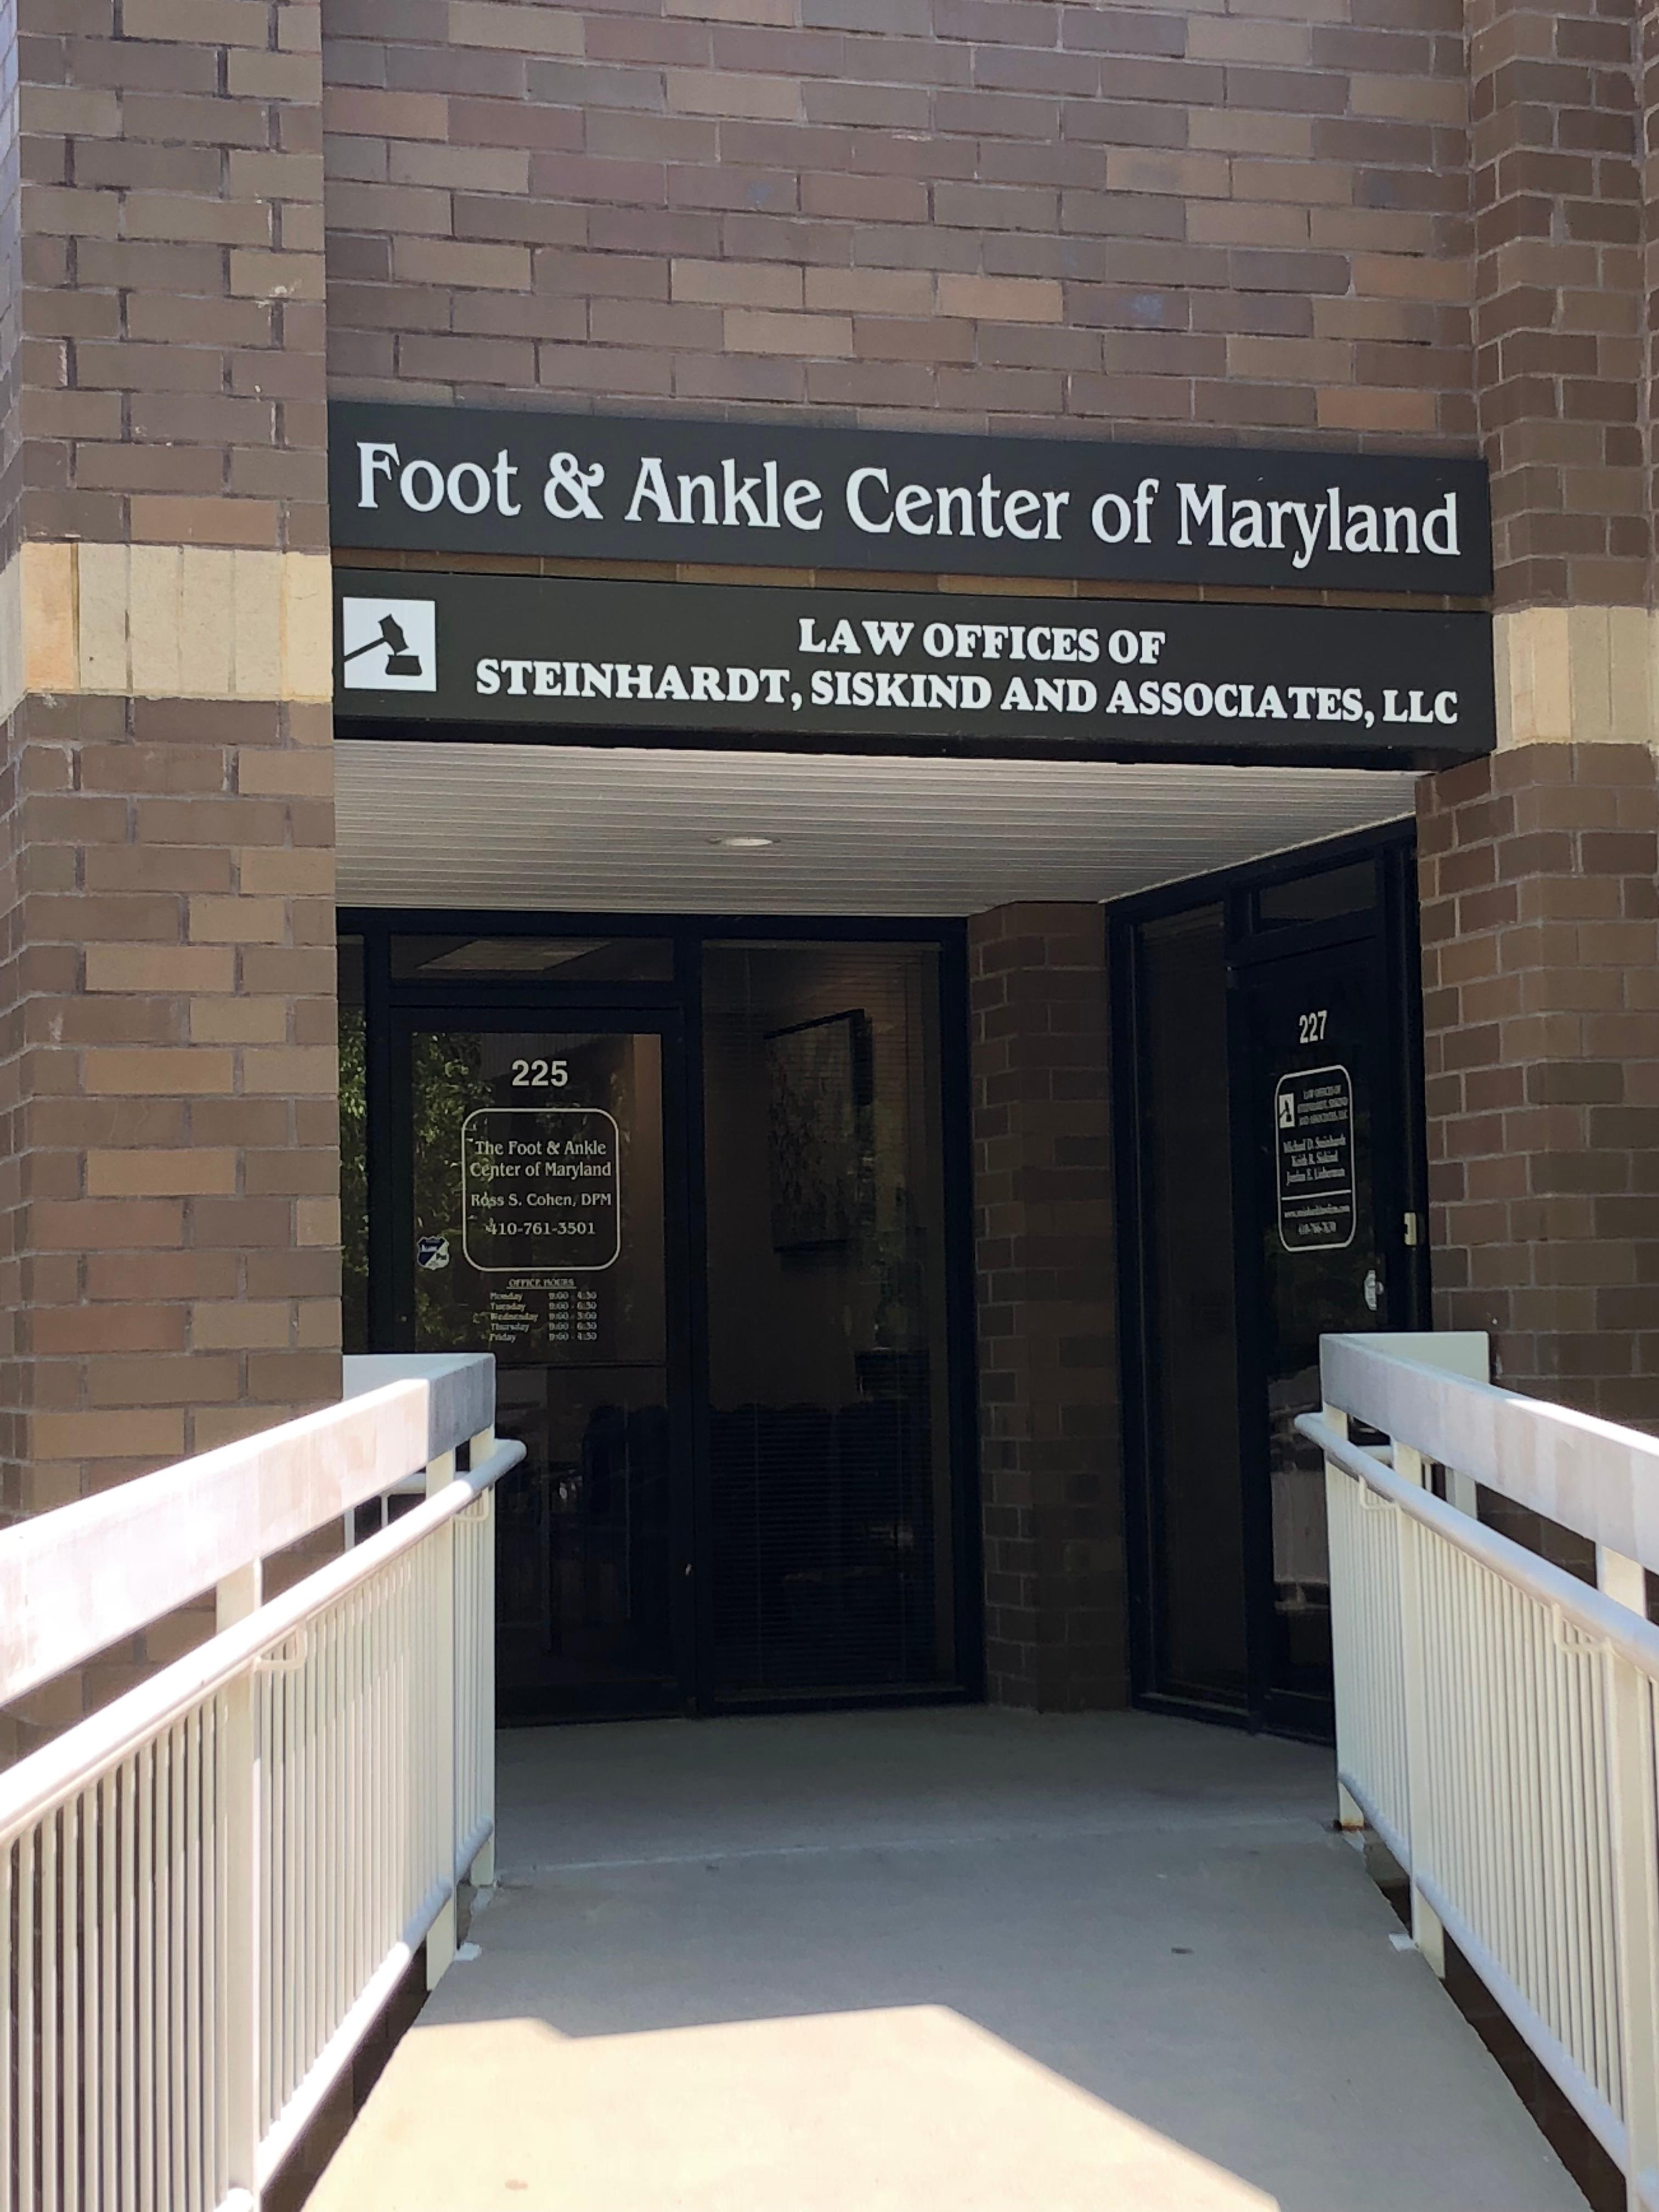 The Foot & Ankle Center of Maryland